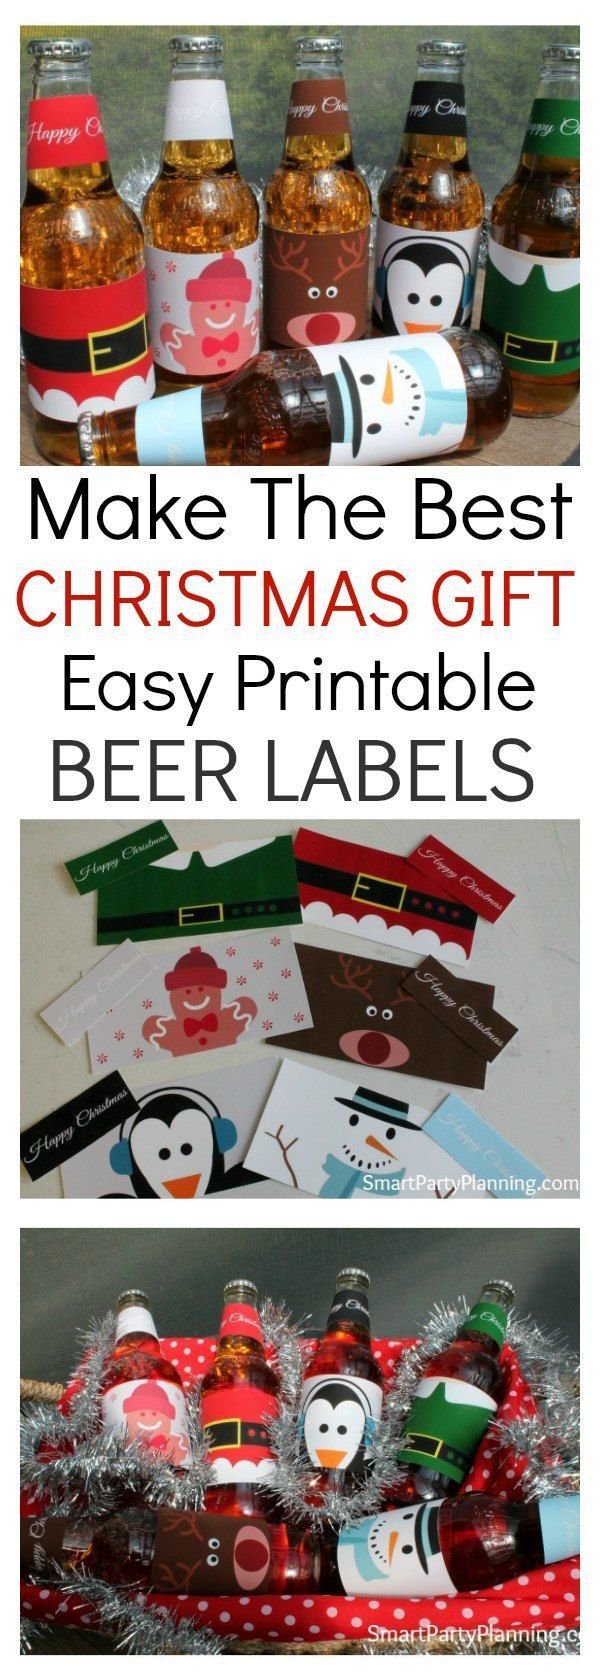 Printable beer labels are the perfect gift idea for your man this Christmas. It is quick and easy to prepare and you know it is going to be something he will love. For a cost effective, easy, different gift idea this definitely ticks all the box's. Altern